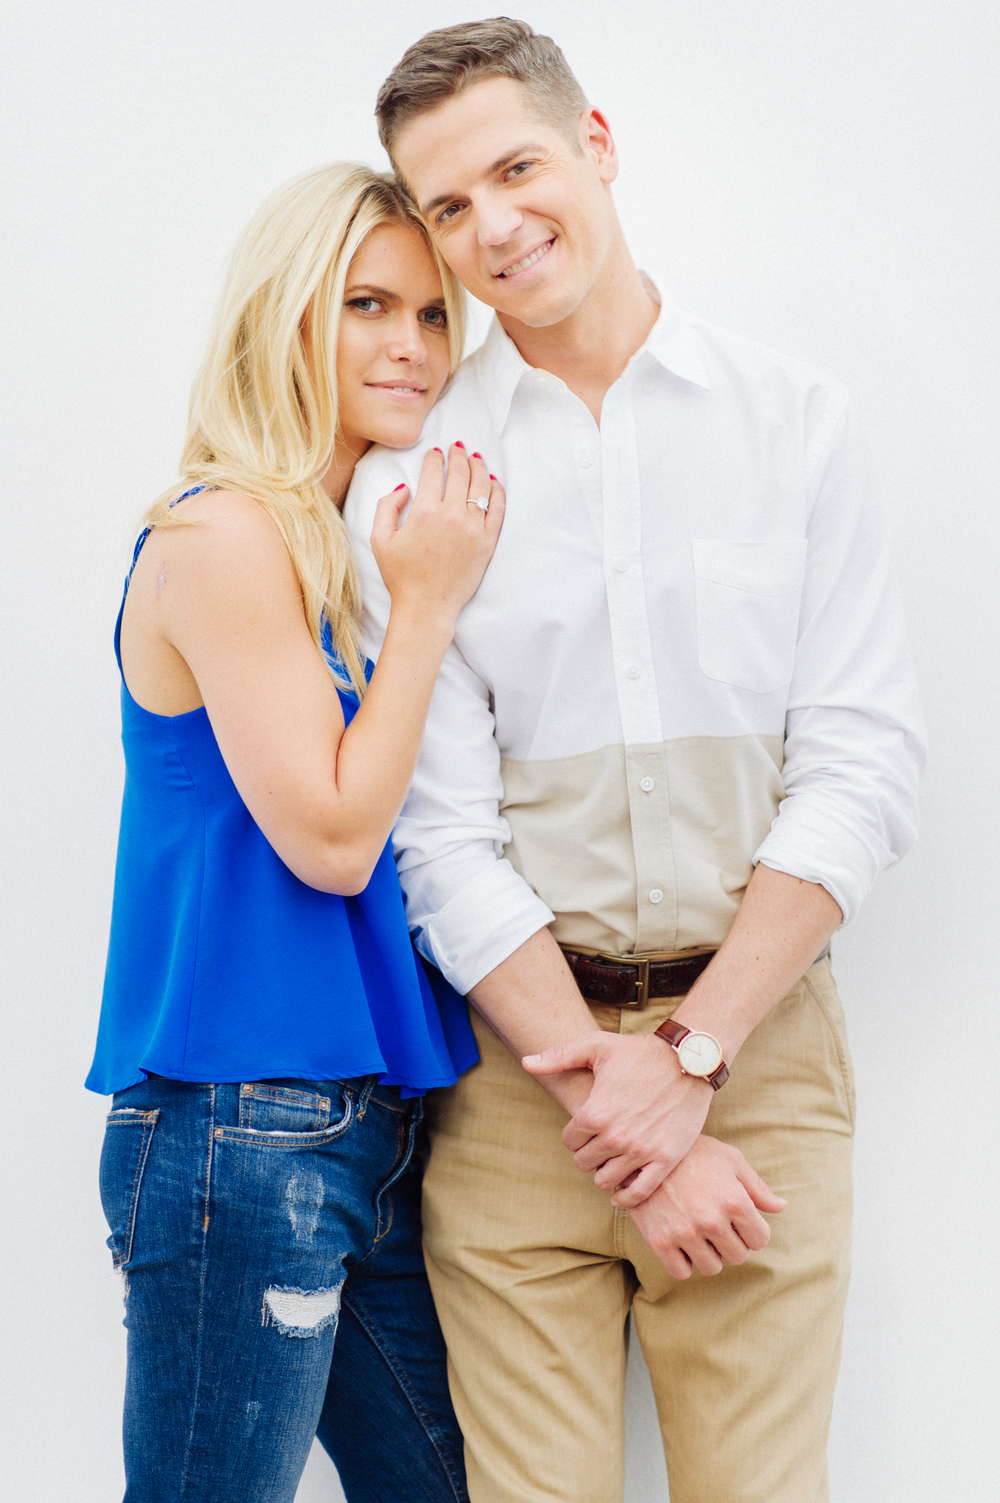 JasonKennedy.LaurenScruggs.Engagements9.jpg